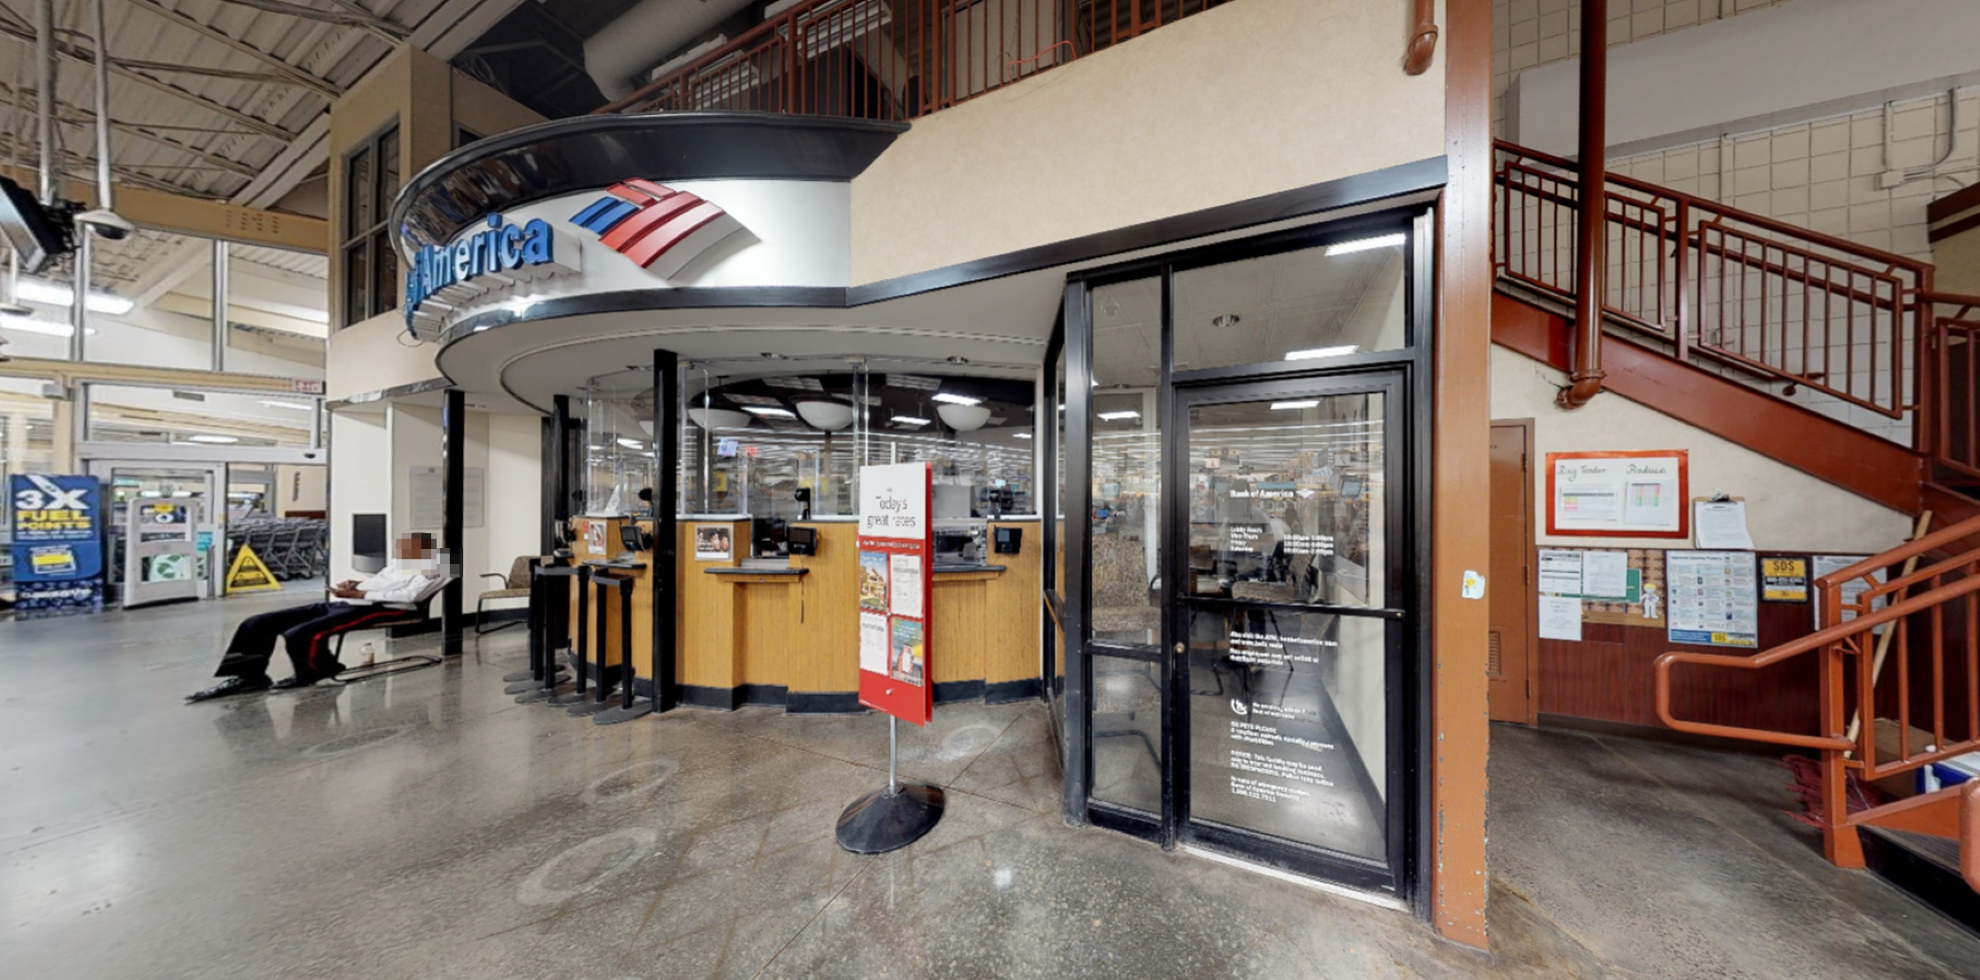 Bank of America financial center with walk-up ATM | 950 Herrington Rd, Lawrenceville, GA 30044